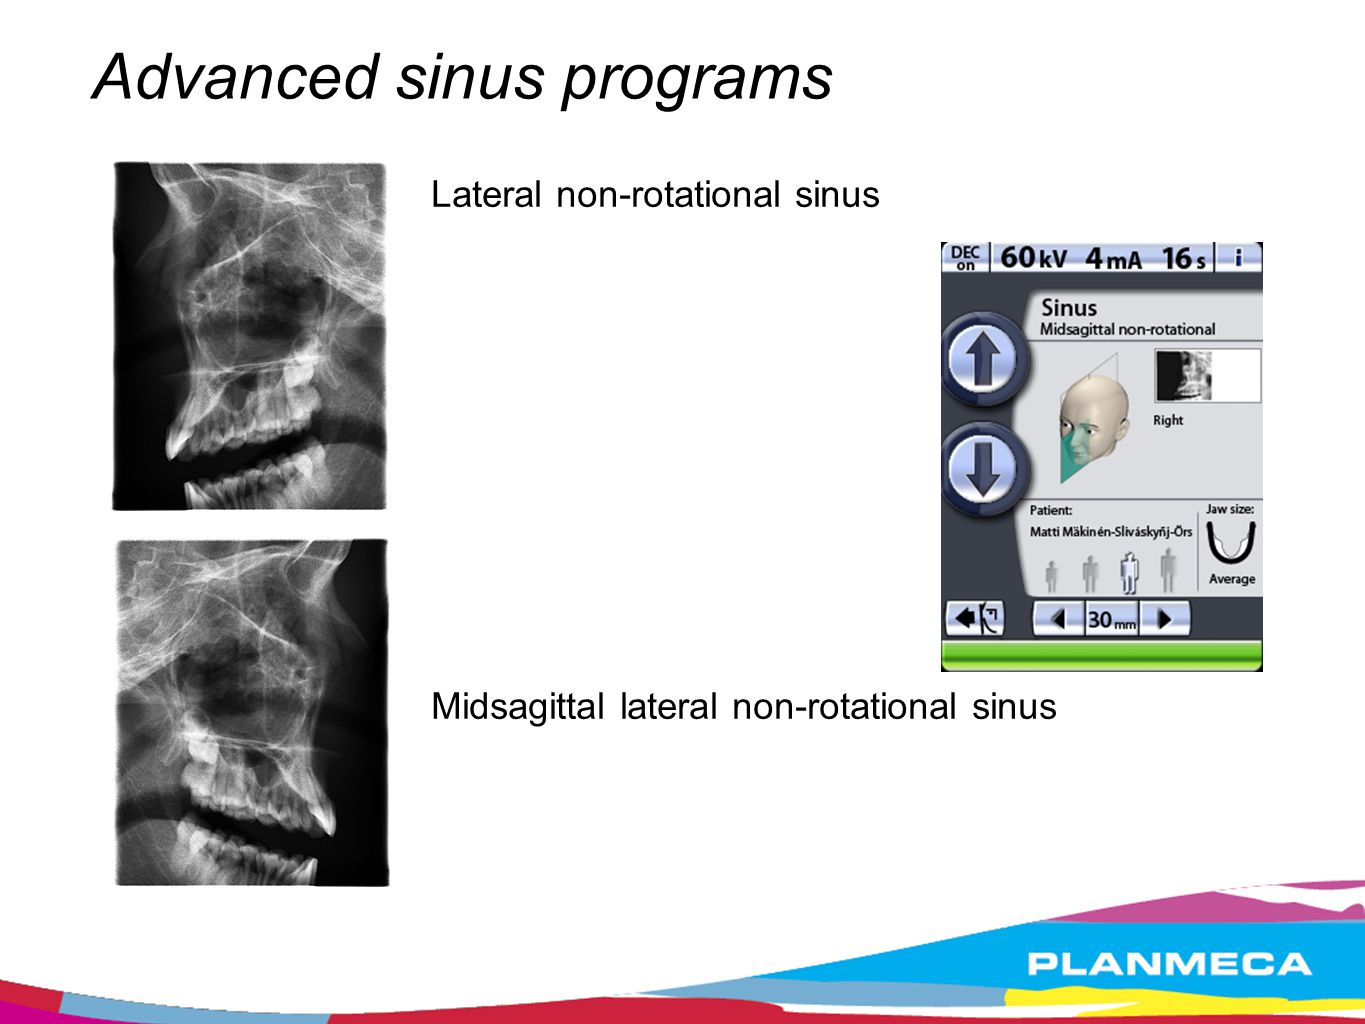 Advanced sinus programs